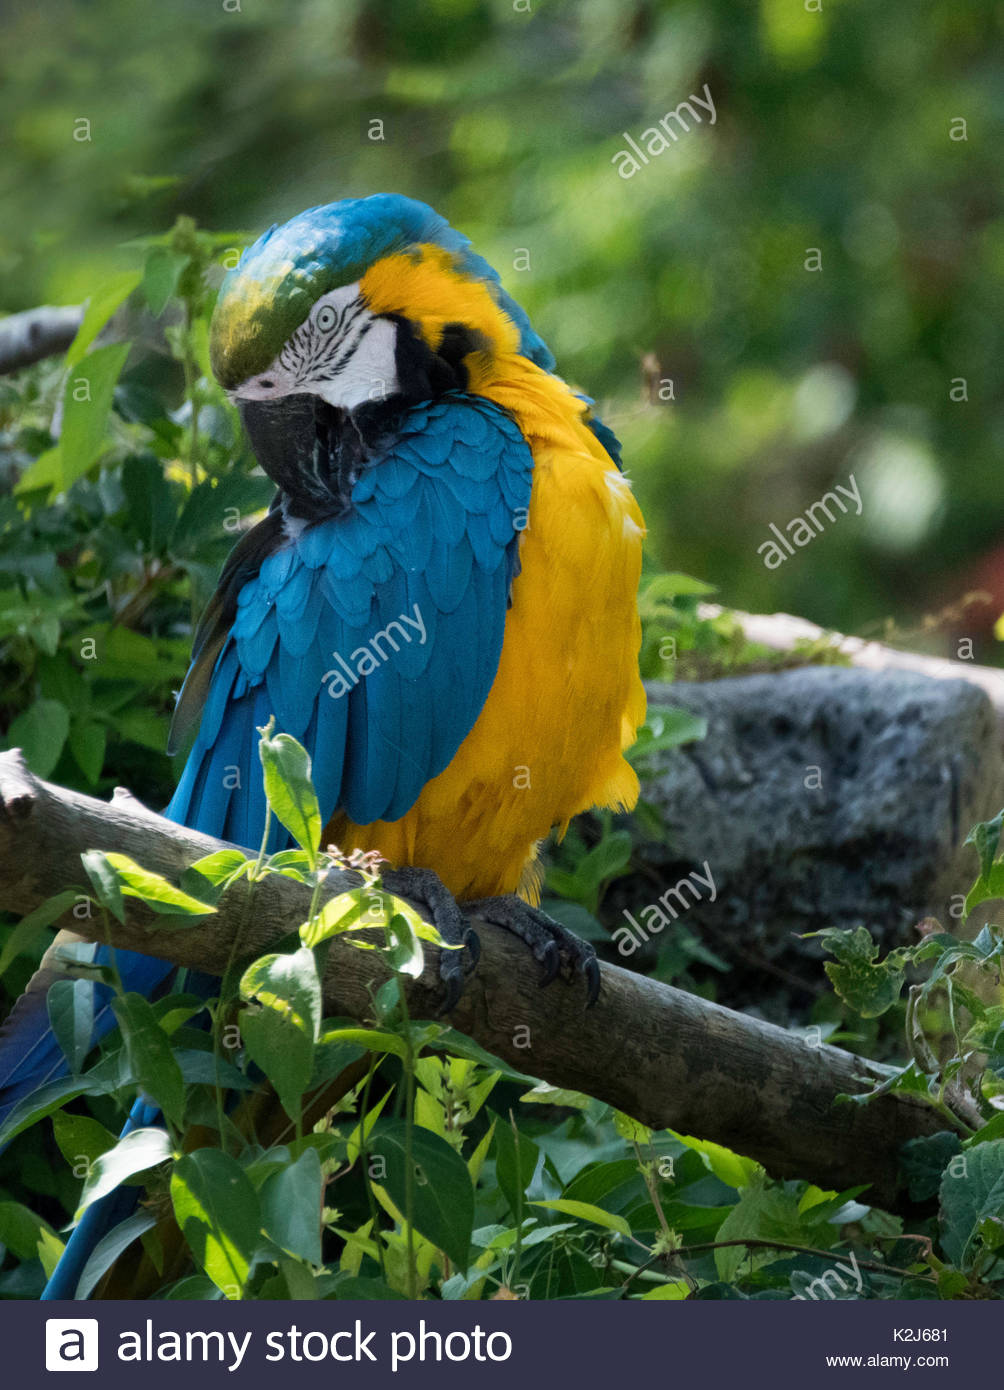 The macaw, or New World parrot with vibrant blue and yellow colour on its feathers. The  Neotropical parrot bird is amid a green vegetation. - Stock Image